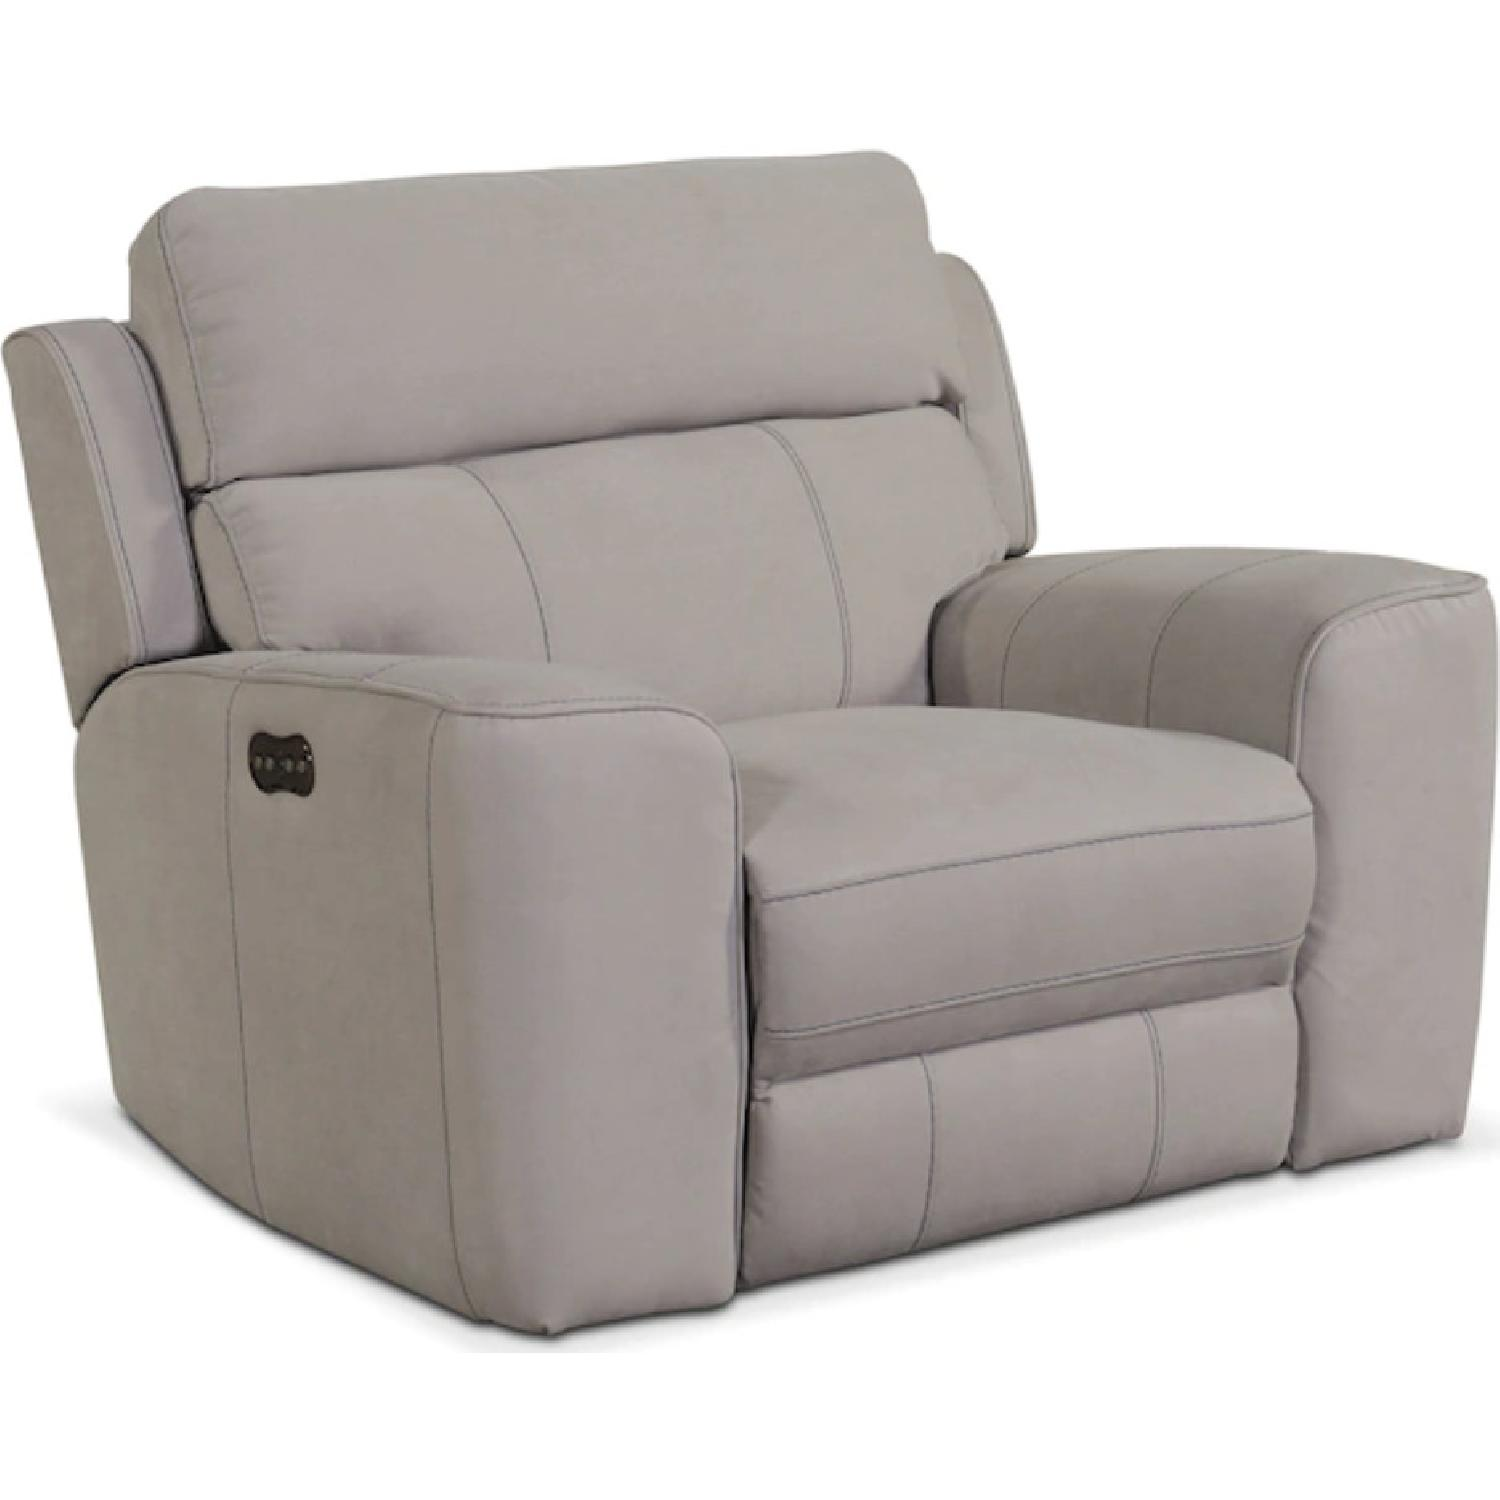 Excellent Value City Furniture Newport Power Motion Recliner Aptdeco Cjindustries Chair Design For Home Cjindustriesco